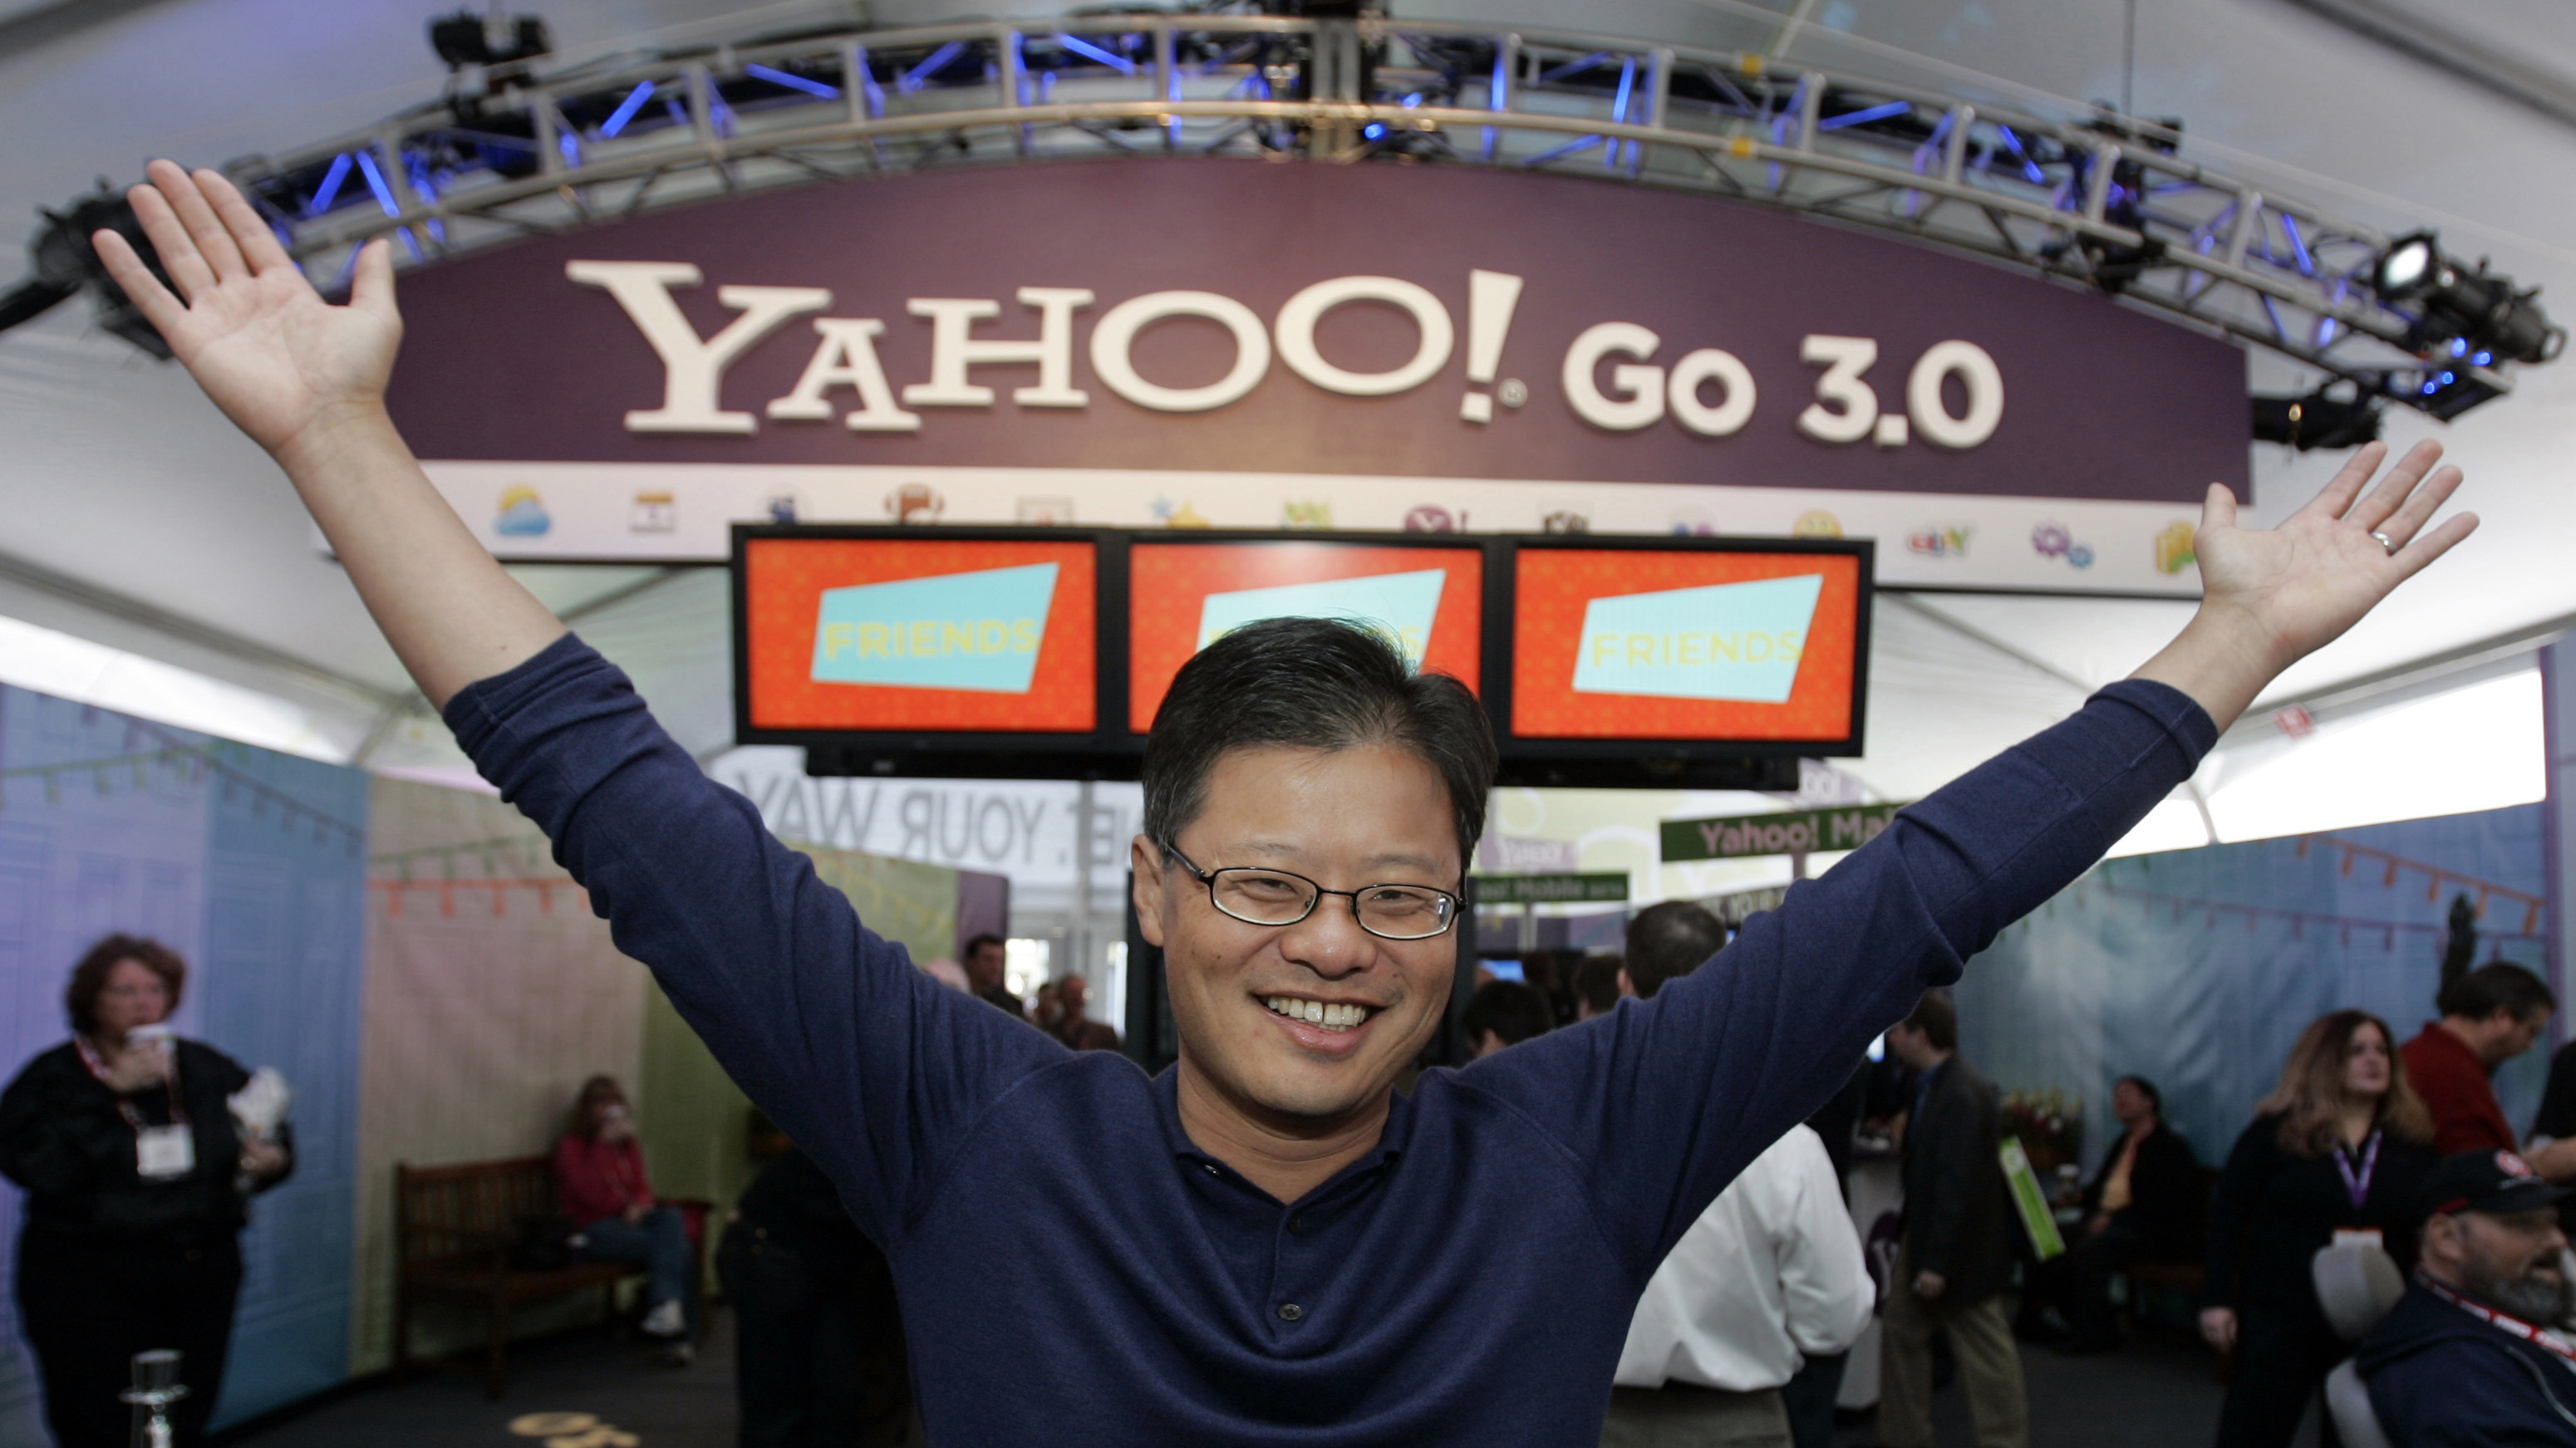 With Alibaba Ipo Yahoo Reaps A Big Reward From Risky Bet Kpbs The close partnership that is key to the ipo process, the visibility opportunities that span the globe, and the merging of heritage and innovation were all integral parts of. with alibaba ipo yahoo reaps a big reward from risky bet kpbs